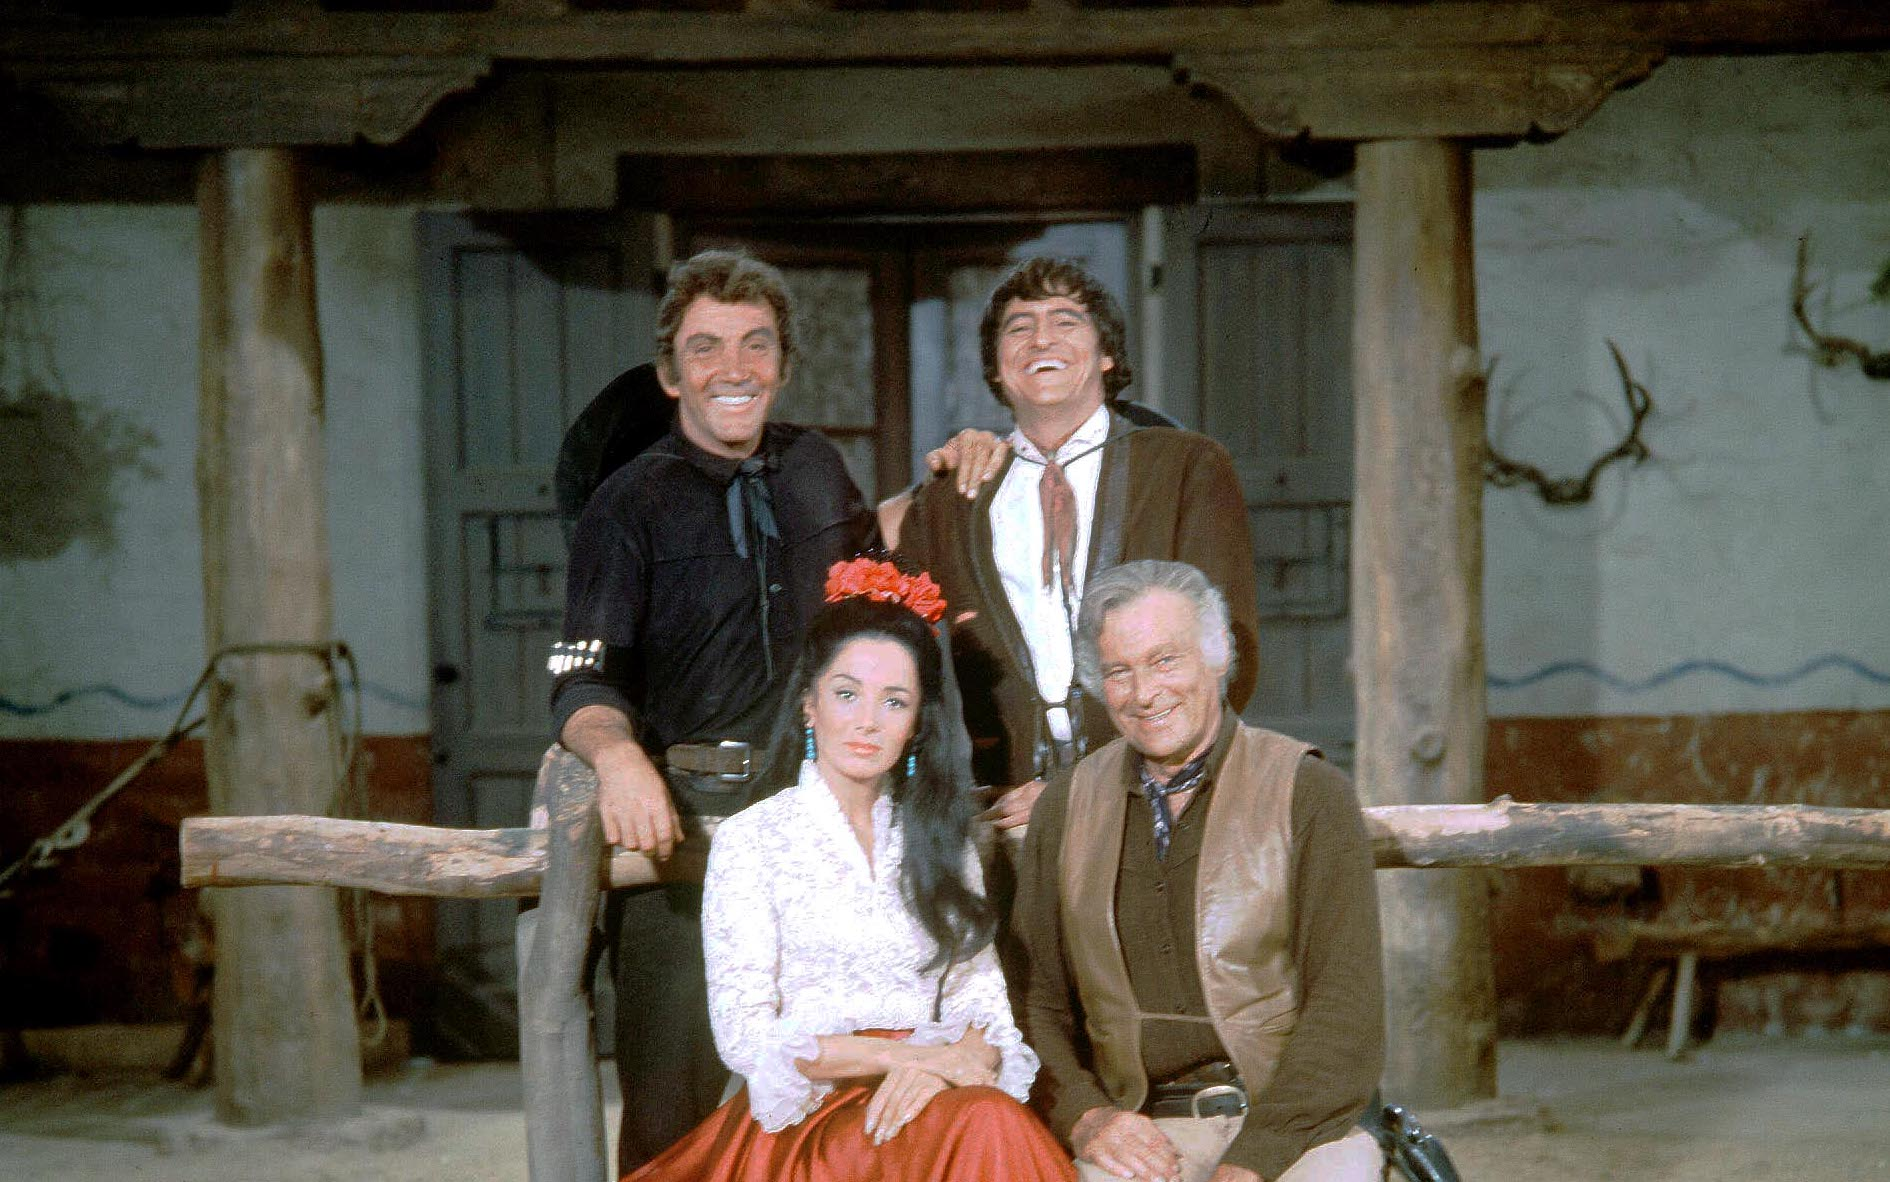 Linda Cristal Dies: 'The High Chaparral' Actress Was 89